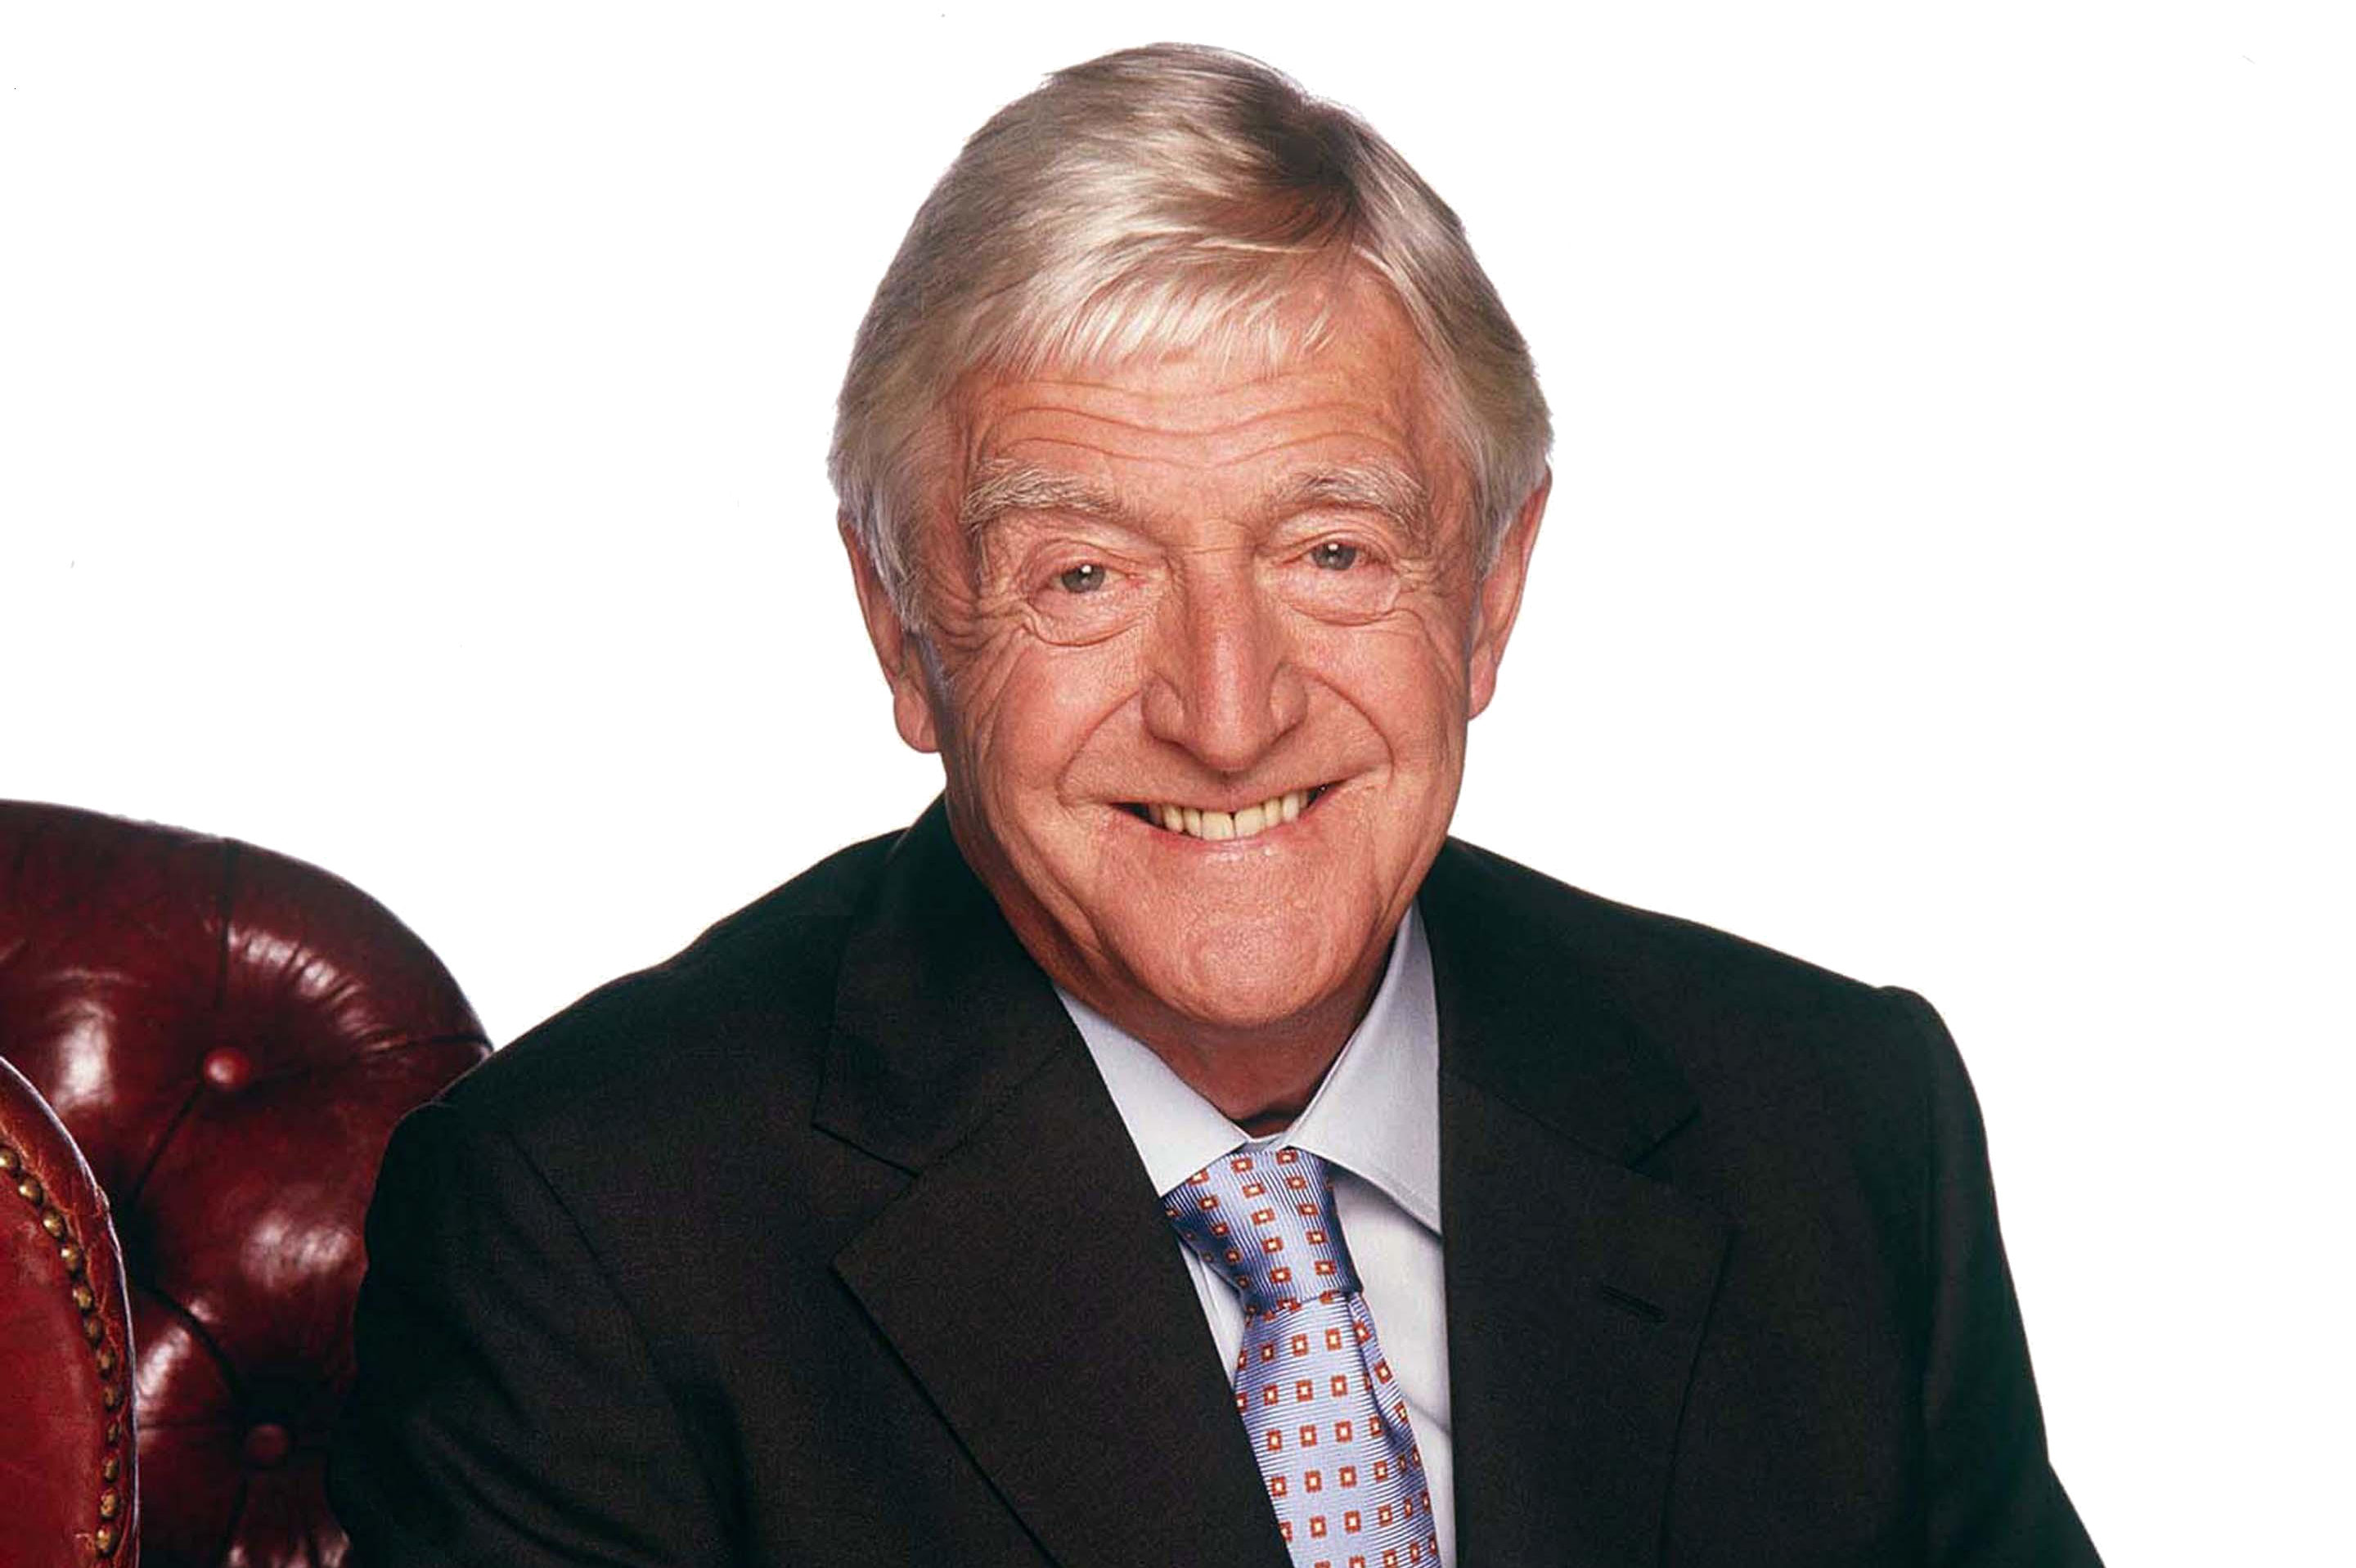 Sir Michael Parkinson is coming to Dundee this weekend.